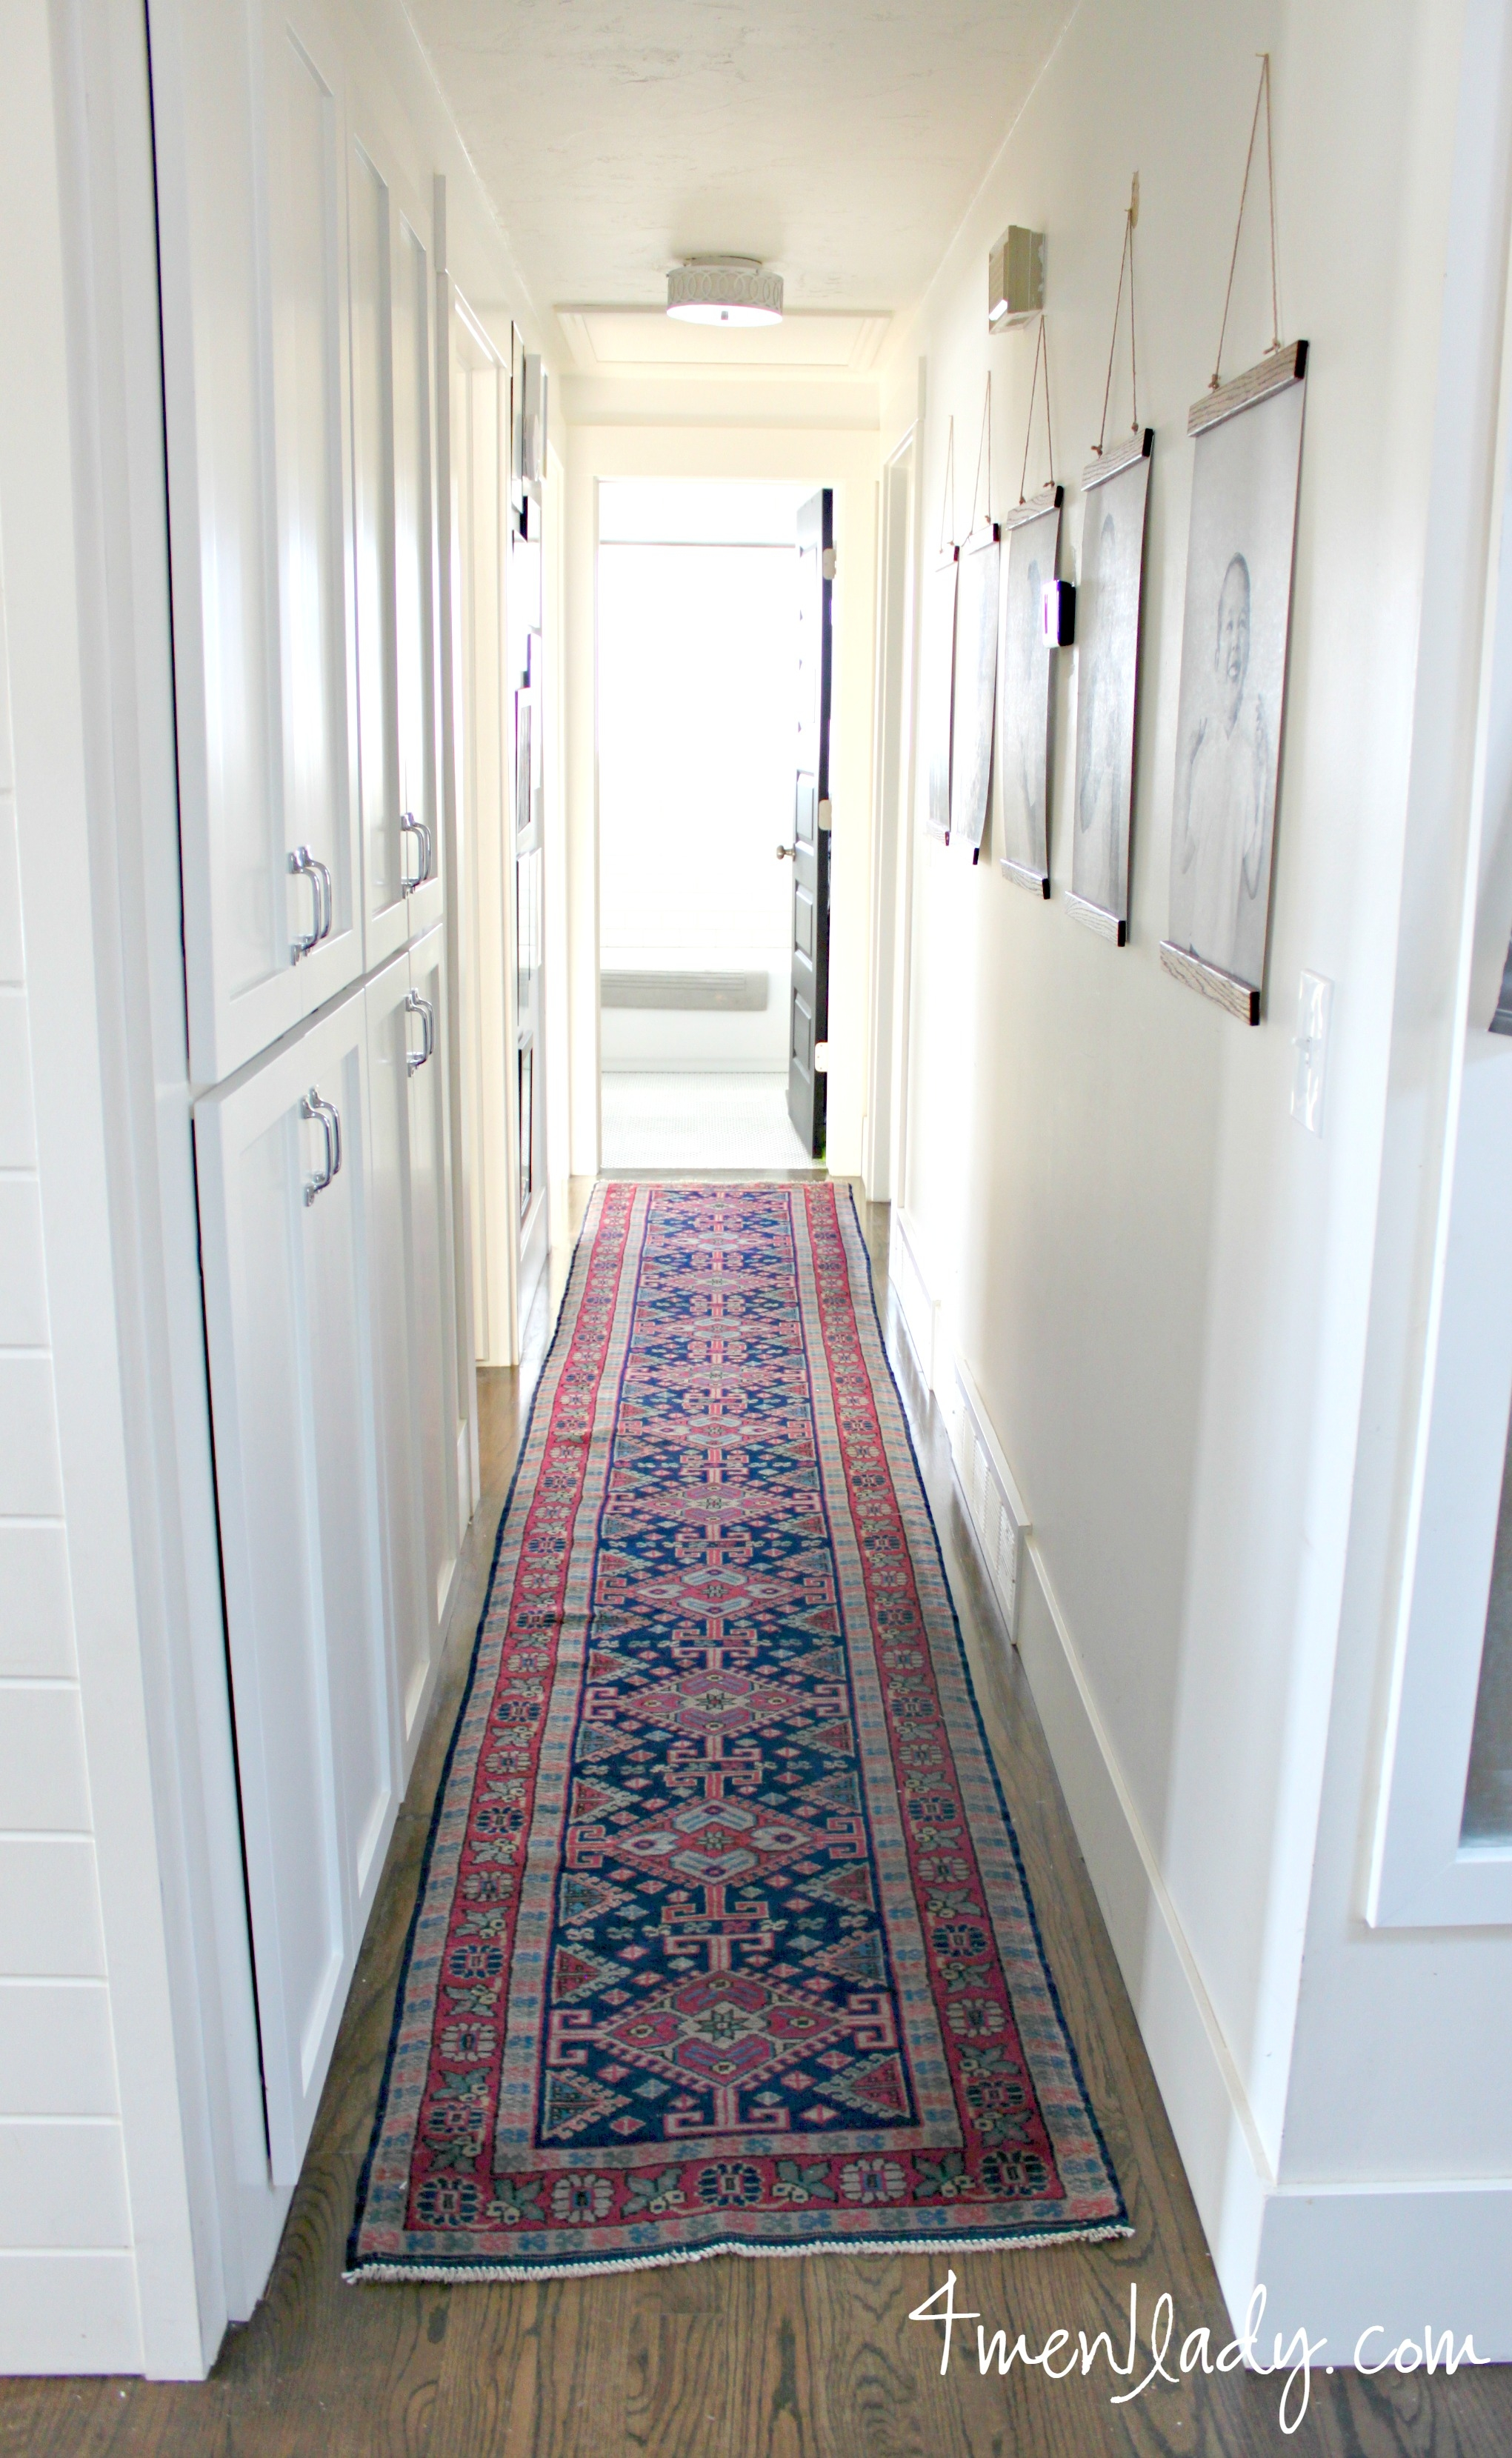 20 Ideas Of Extra Long Runners For Hallway